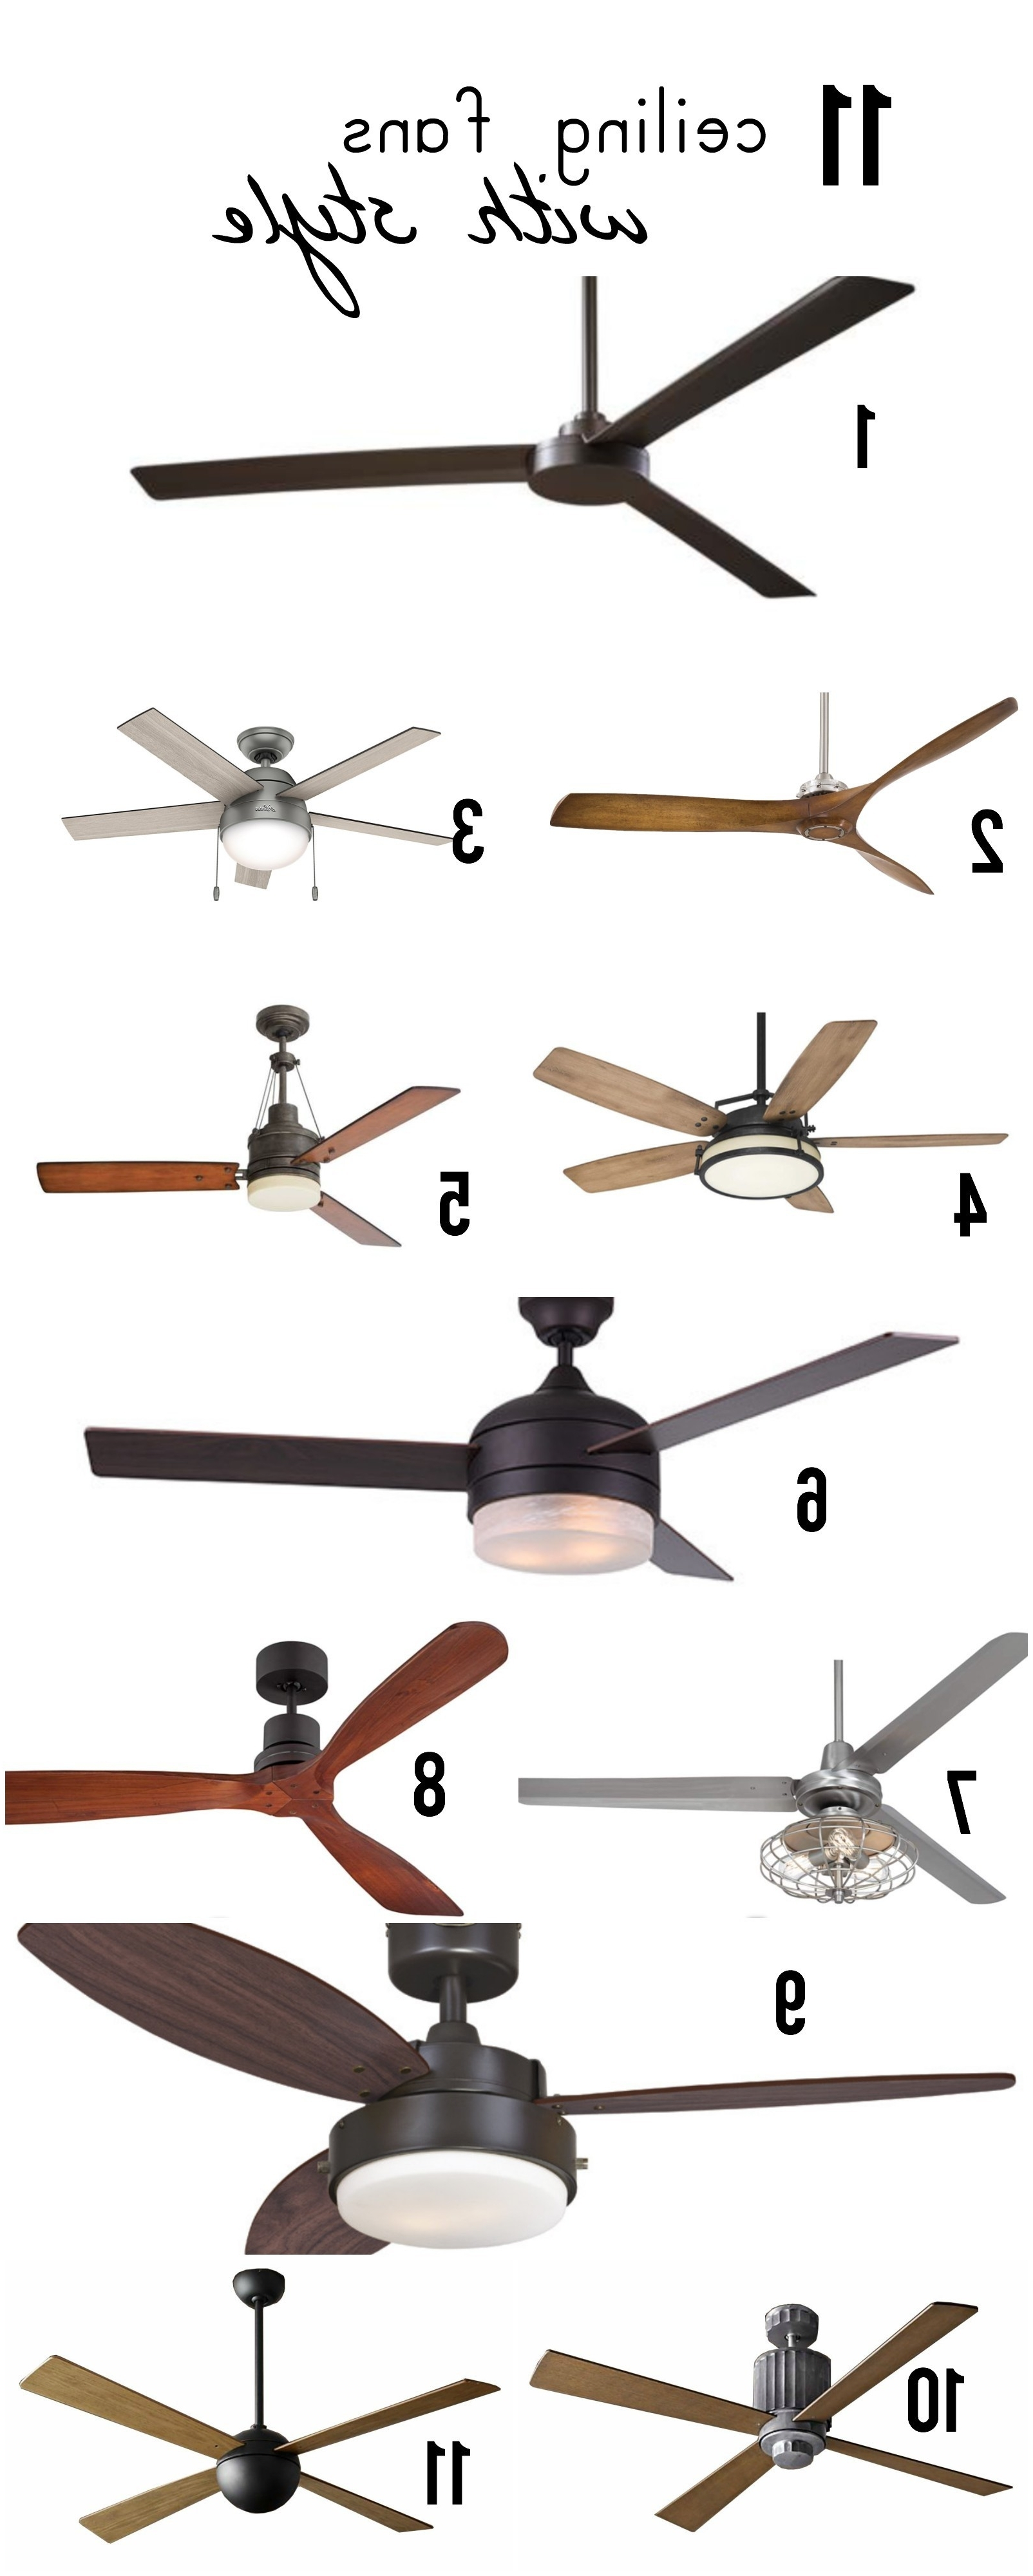 Nflscheap For Outdoor Windmill Ceiling Fans With Light (View 17 of 20)